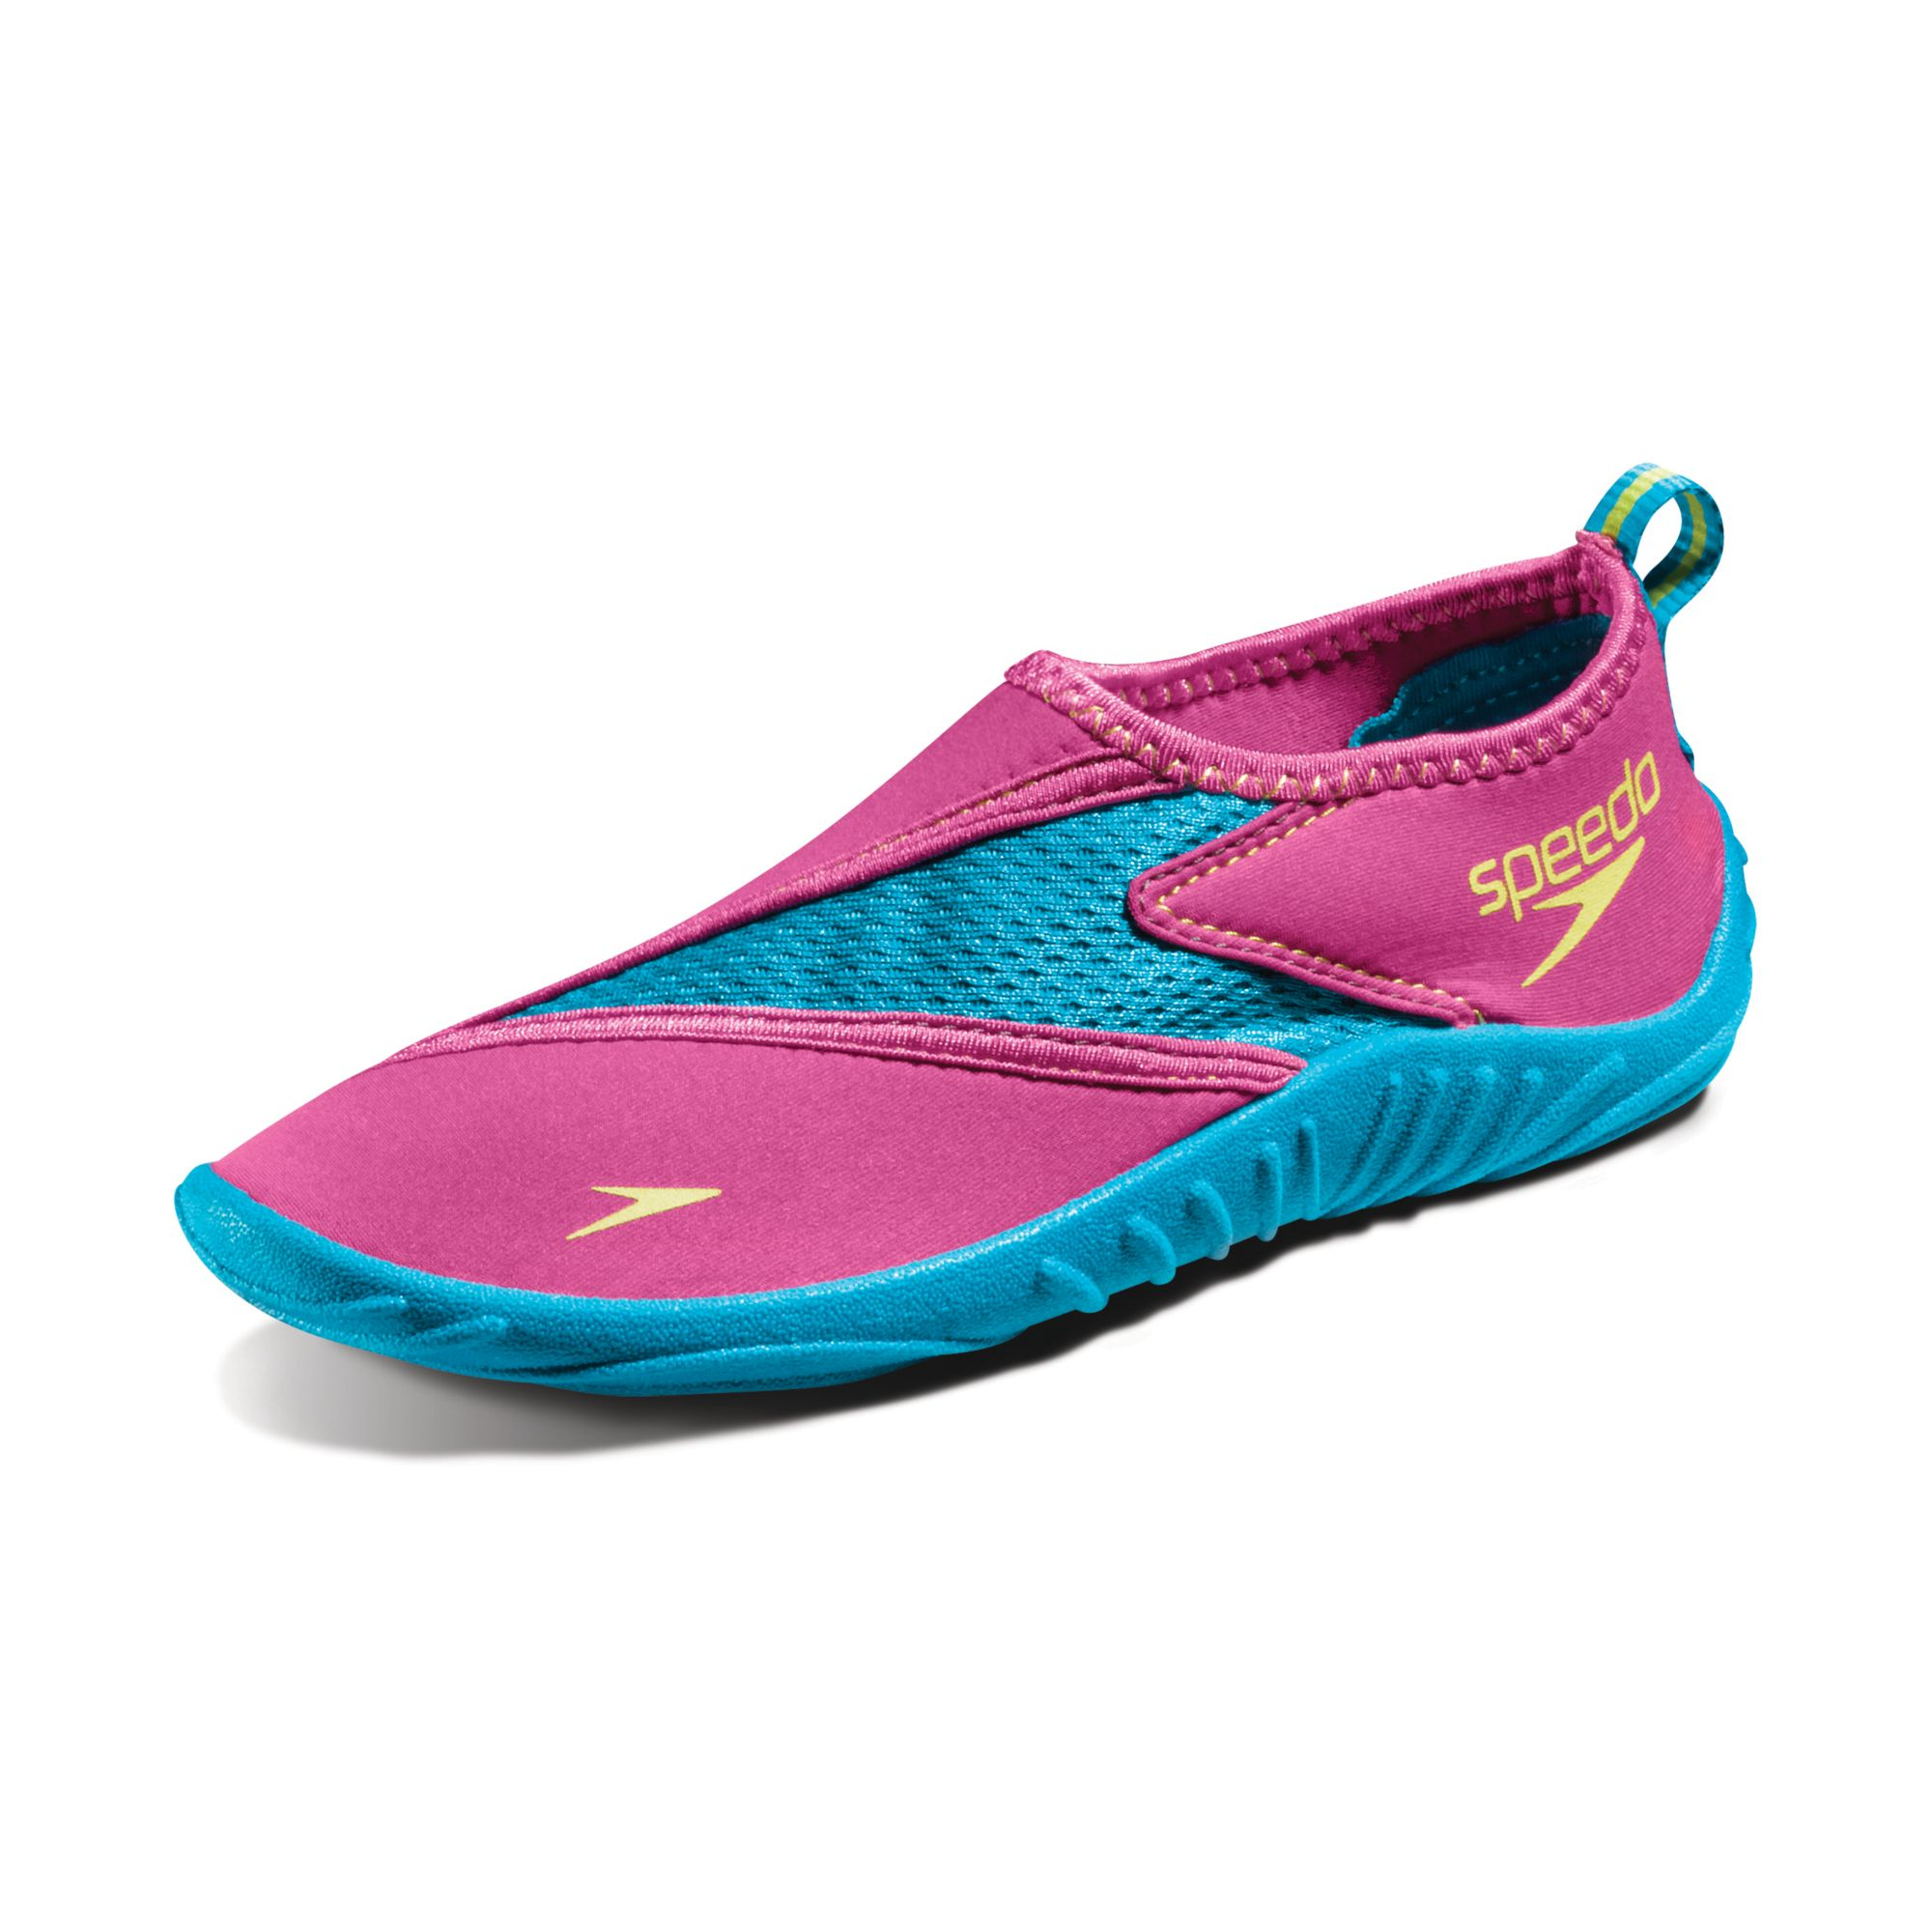 Kids Stock A Wide Selection Of Luxury Premium Cotton: Kids Water Shoes, Shoes